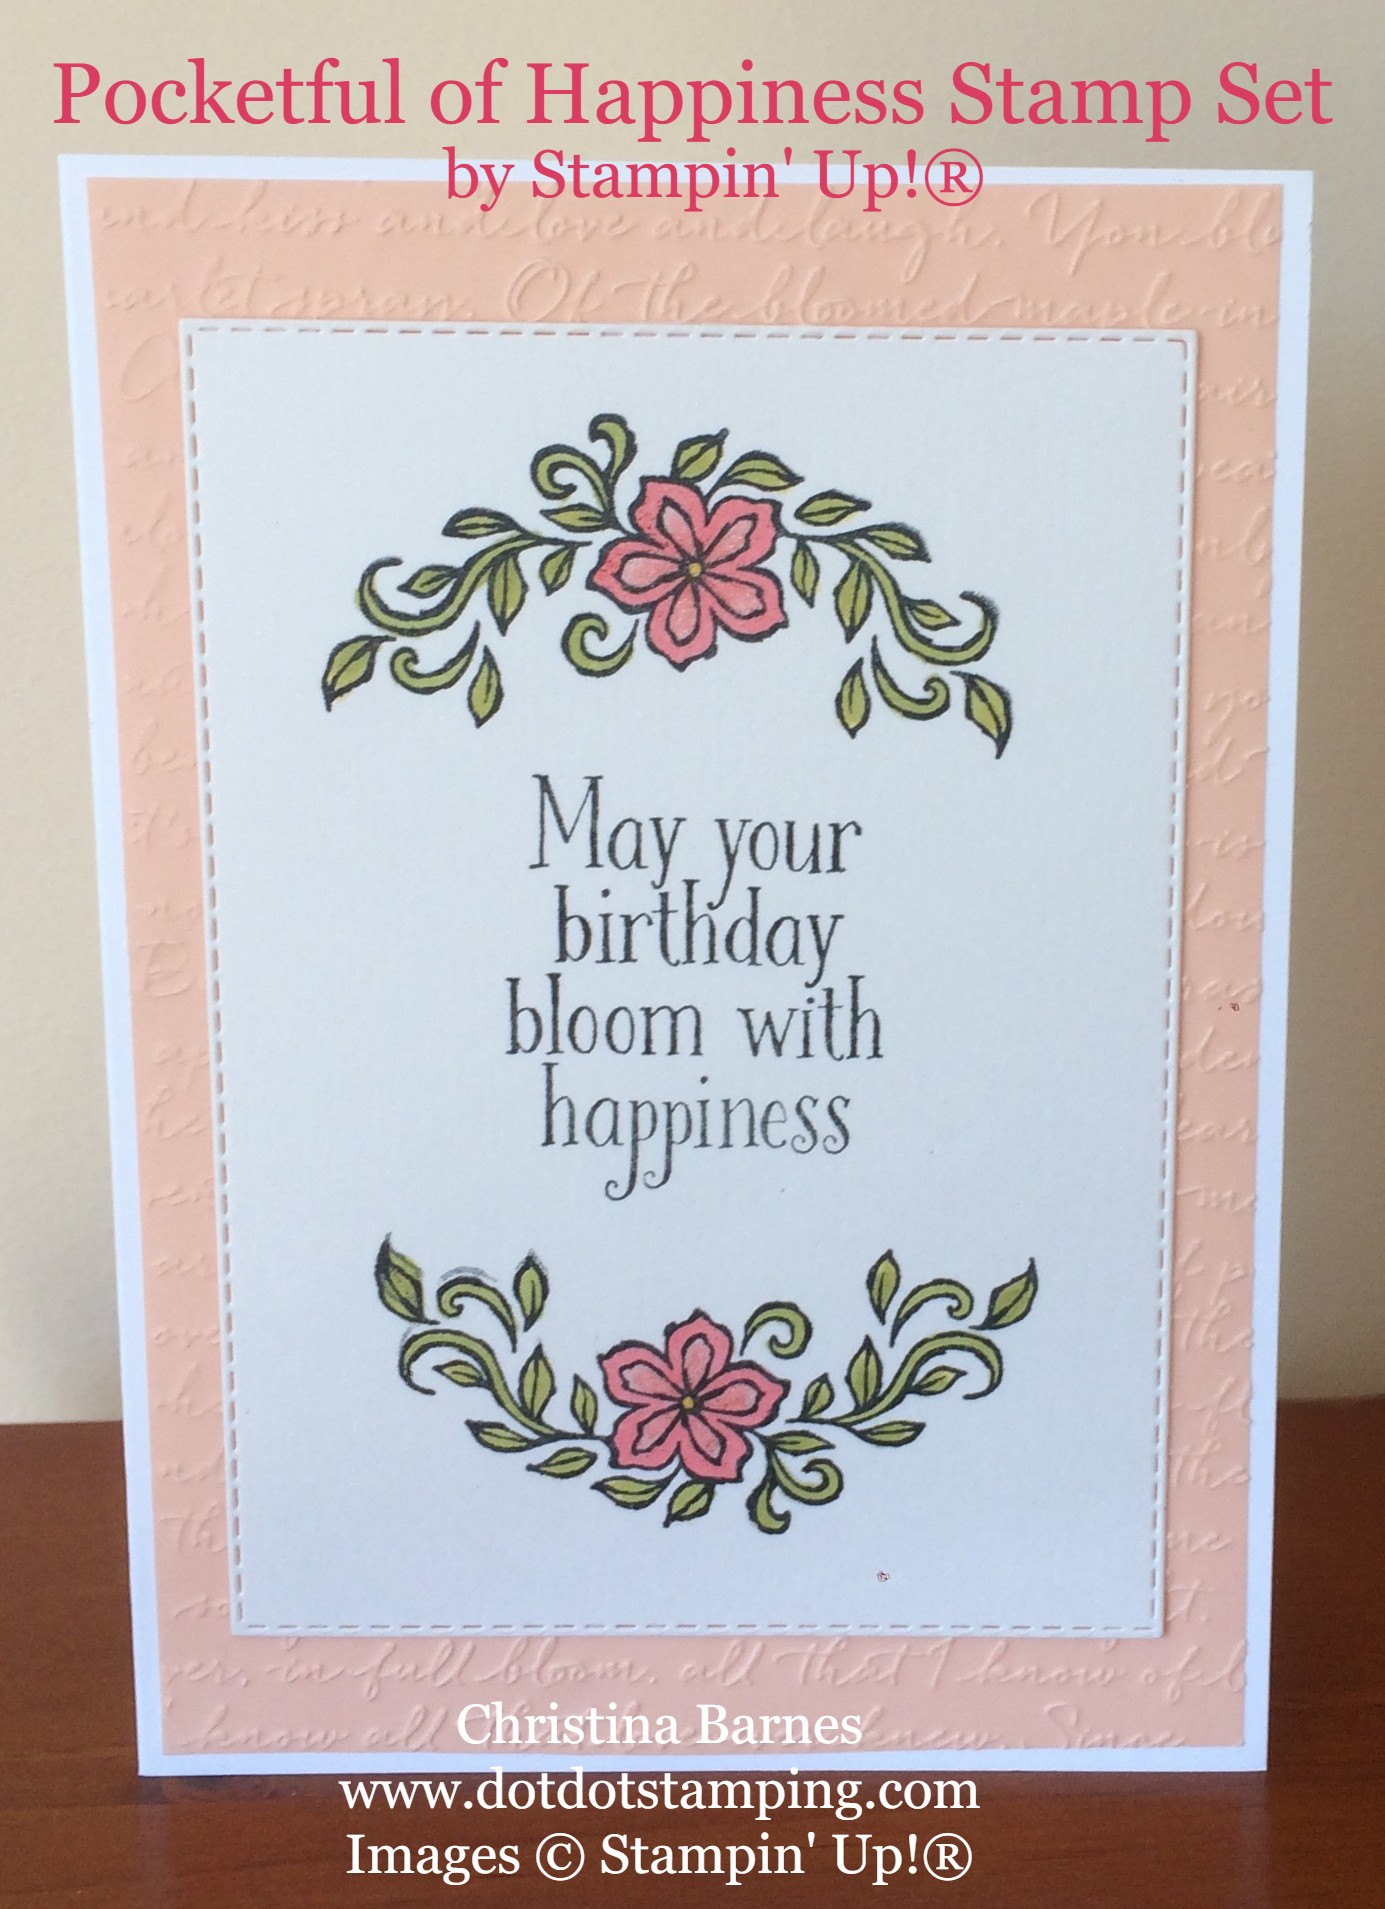 Pocketful of Happiness Card Scripty Embossing Folder Stitched Rectangle Dies Stampin' Up! 2019 Annual Catalogue Christina Barnes Dot Dot Stamping